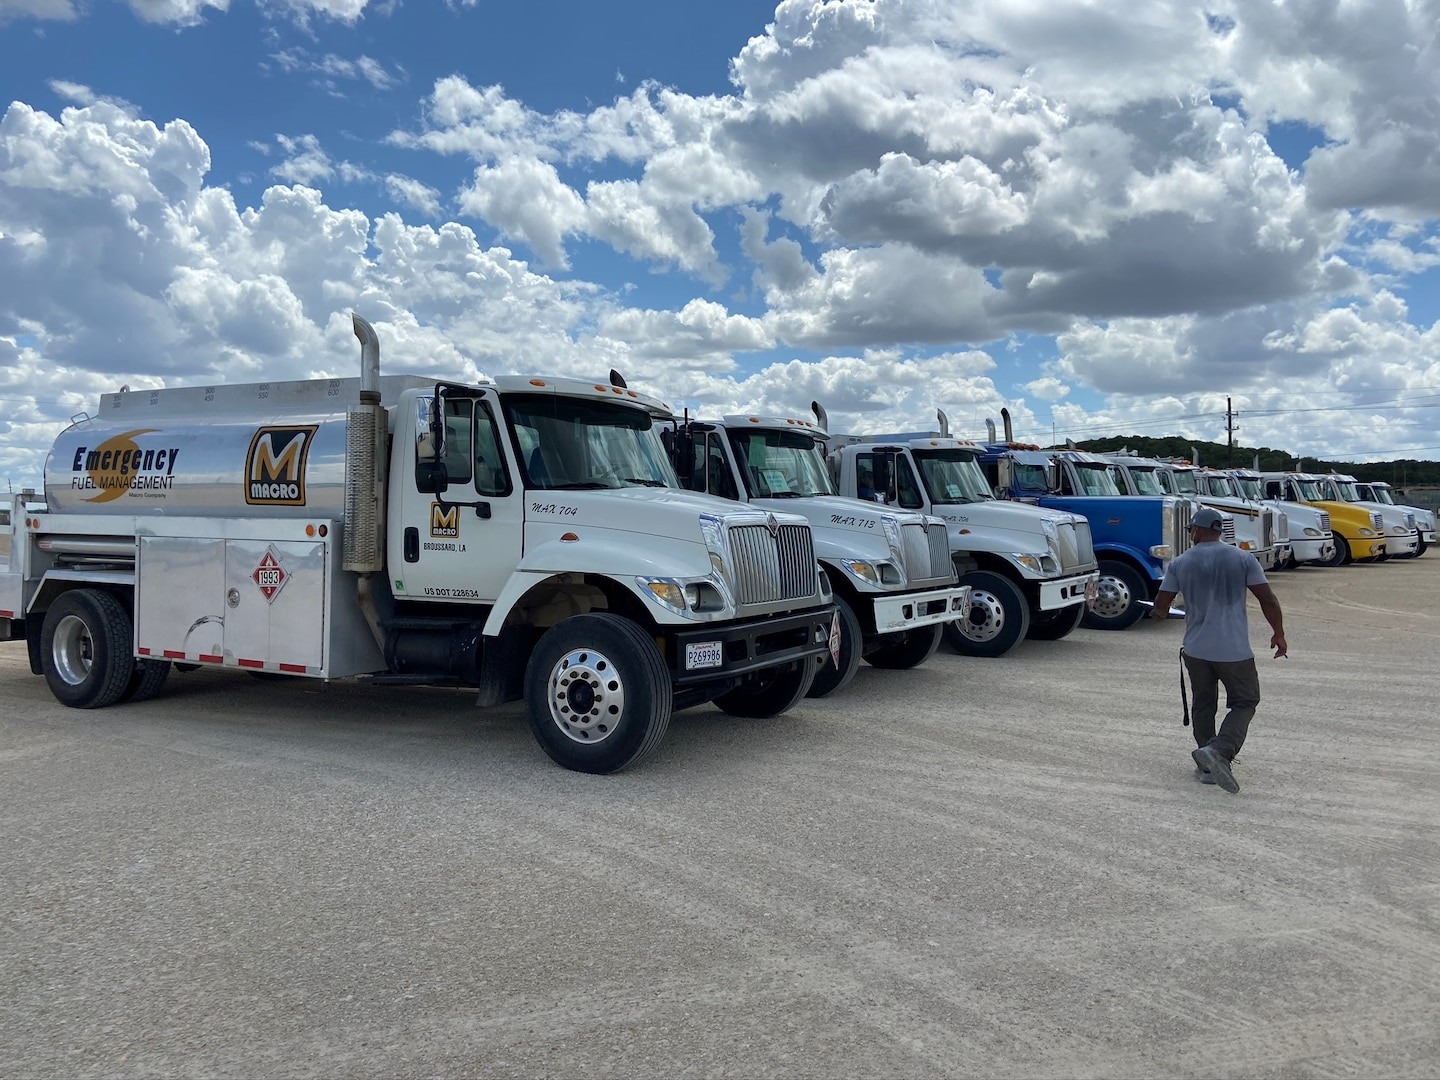 a line of fuel trucks parked with a man walking in front